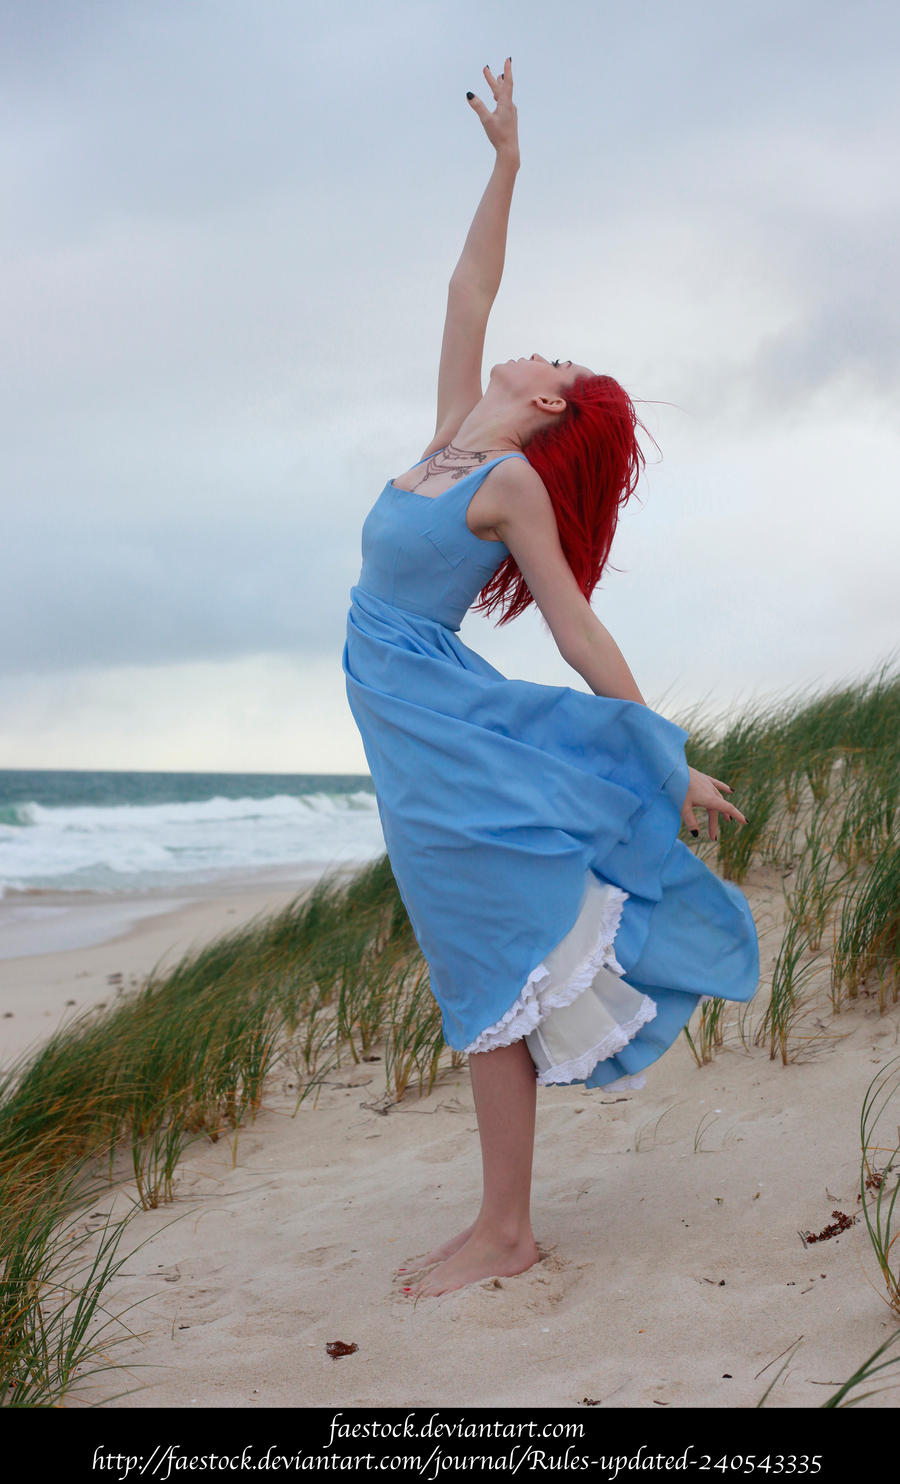 Blue Wind Preview by faestock